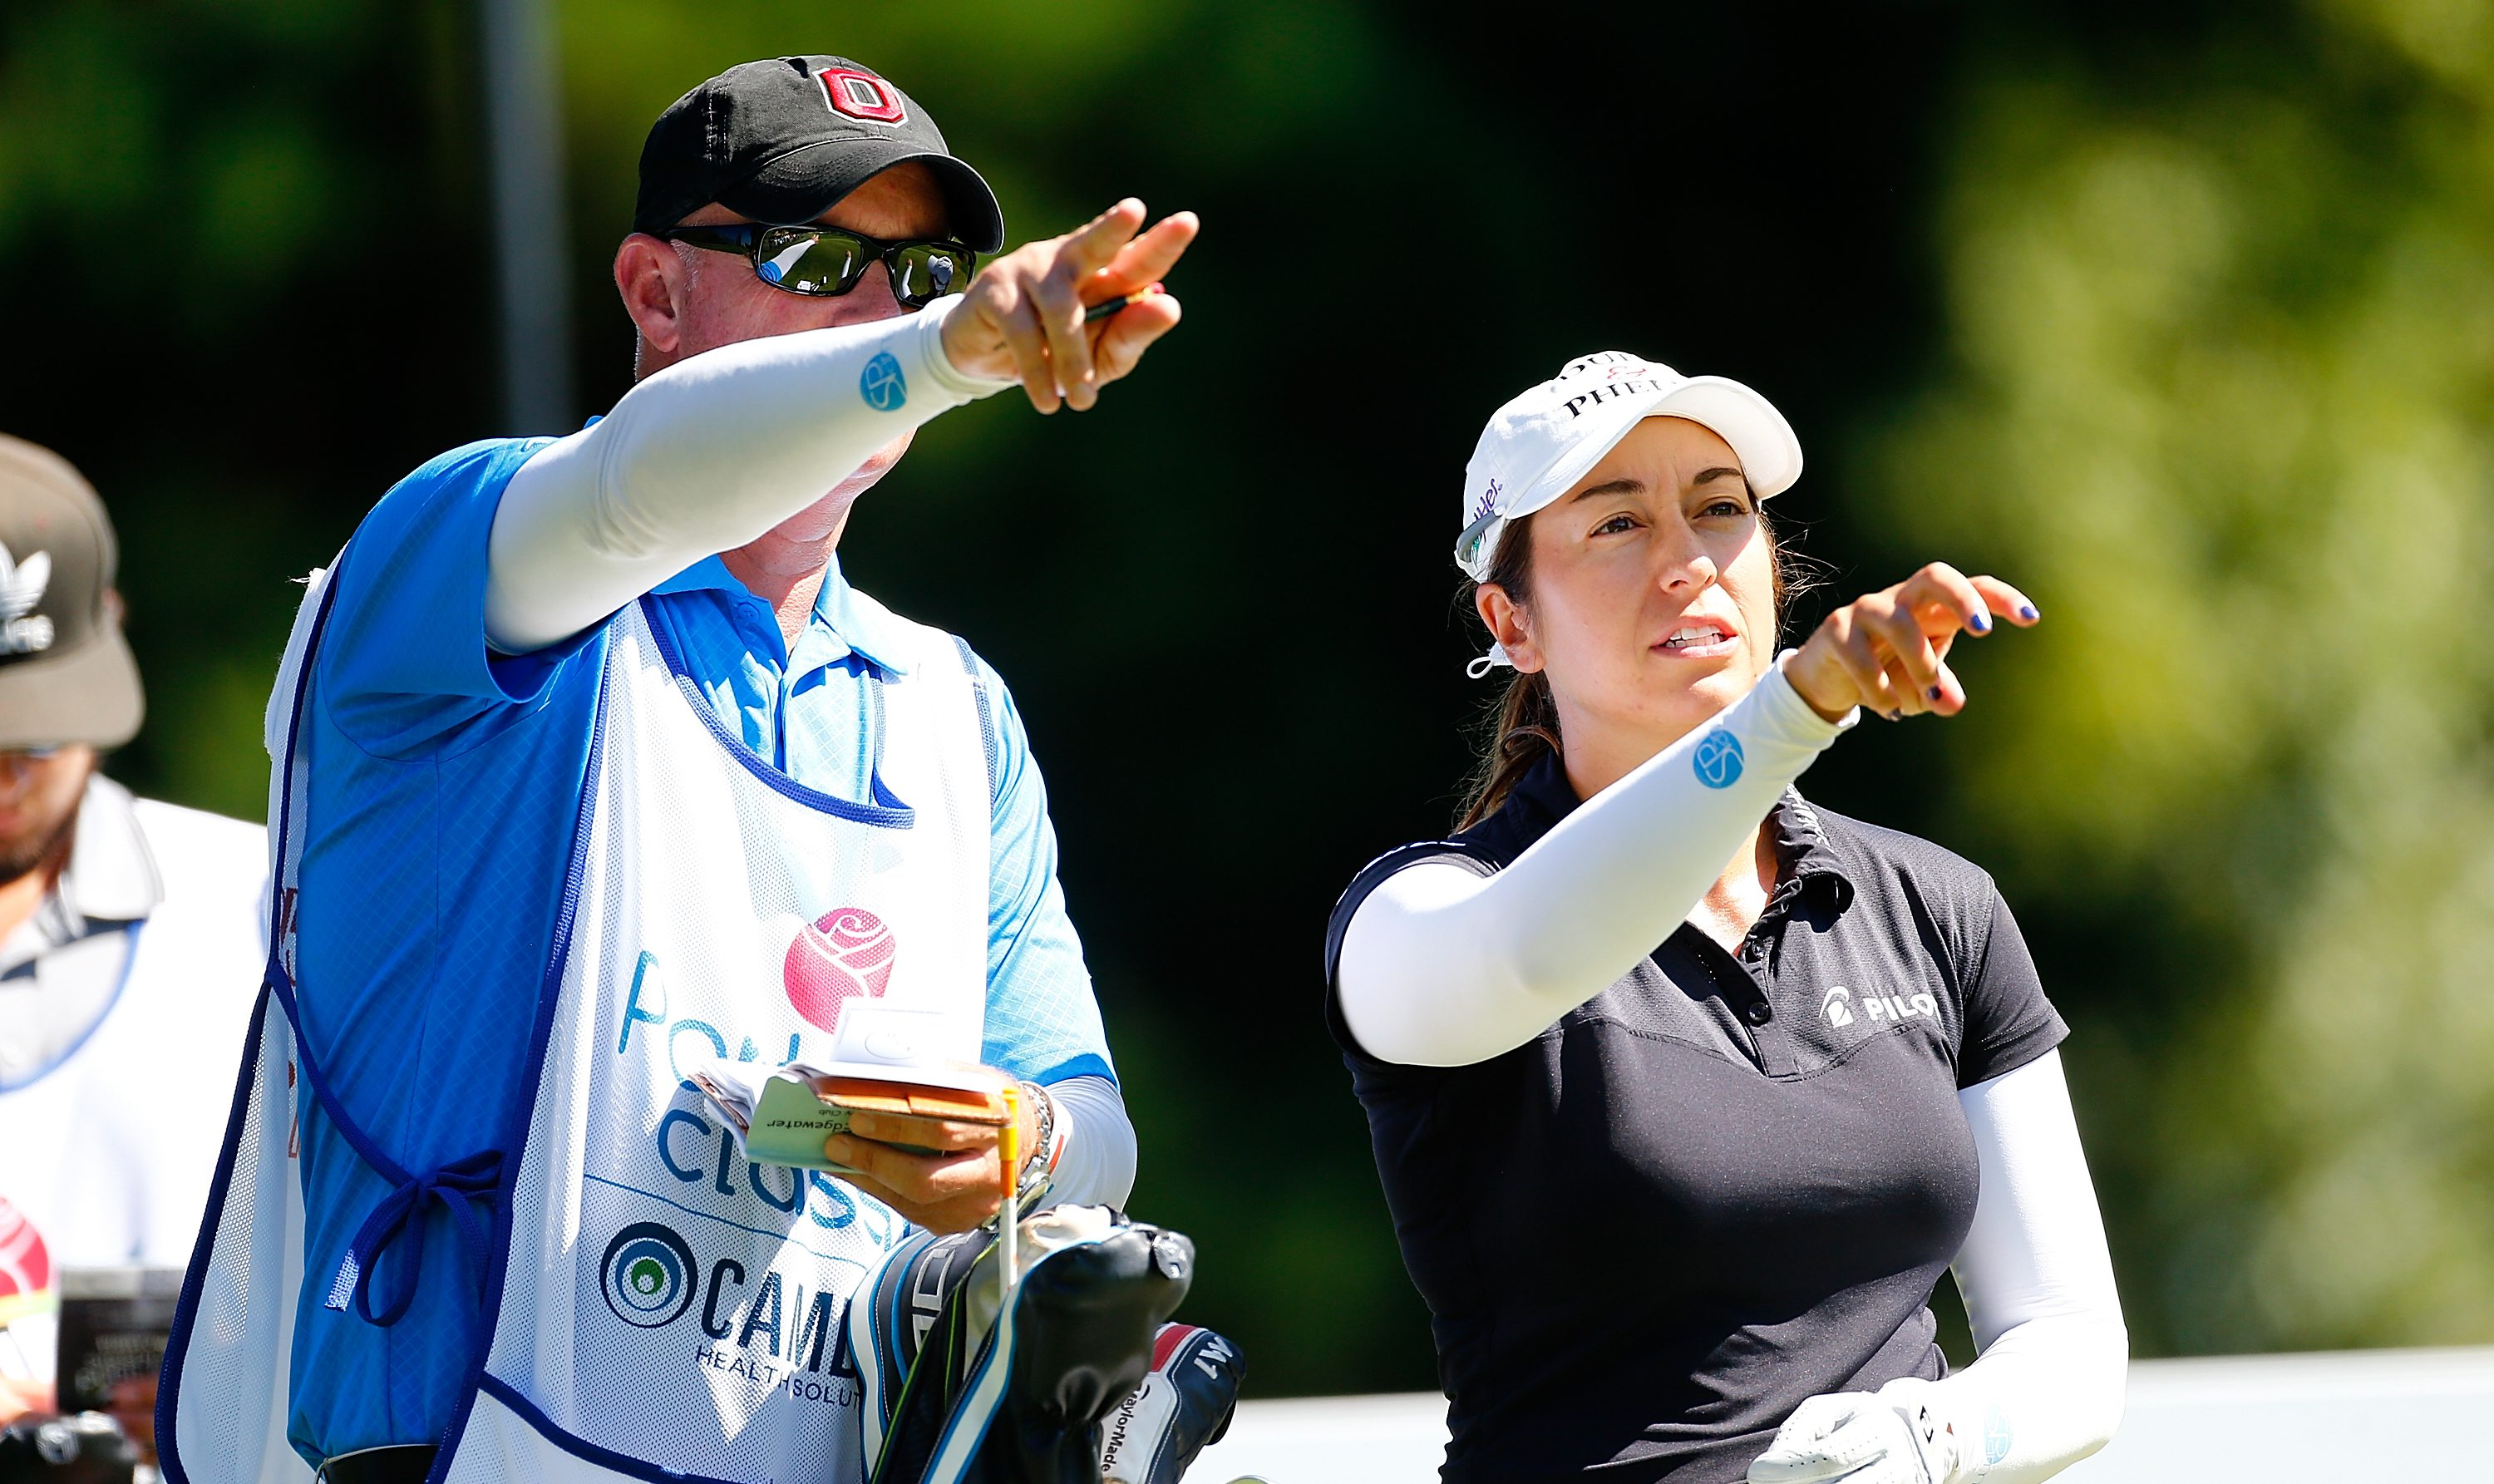 PORTLAND, OR - SEPTEMBER 02: Marina Alex talks to ner caddie on the 2nd hole during the final round of the LPGA Cambia Portland Classic at Columbia Edgewater Country Club on September 2, 2018 in Portland, Oregon. (Photo by Jonathan Ferrey/Getty Images)